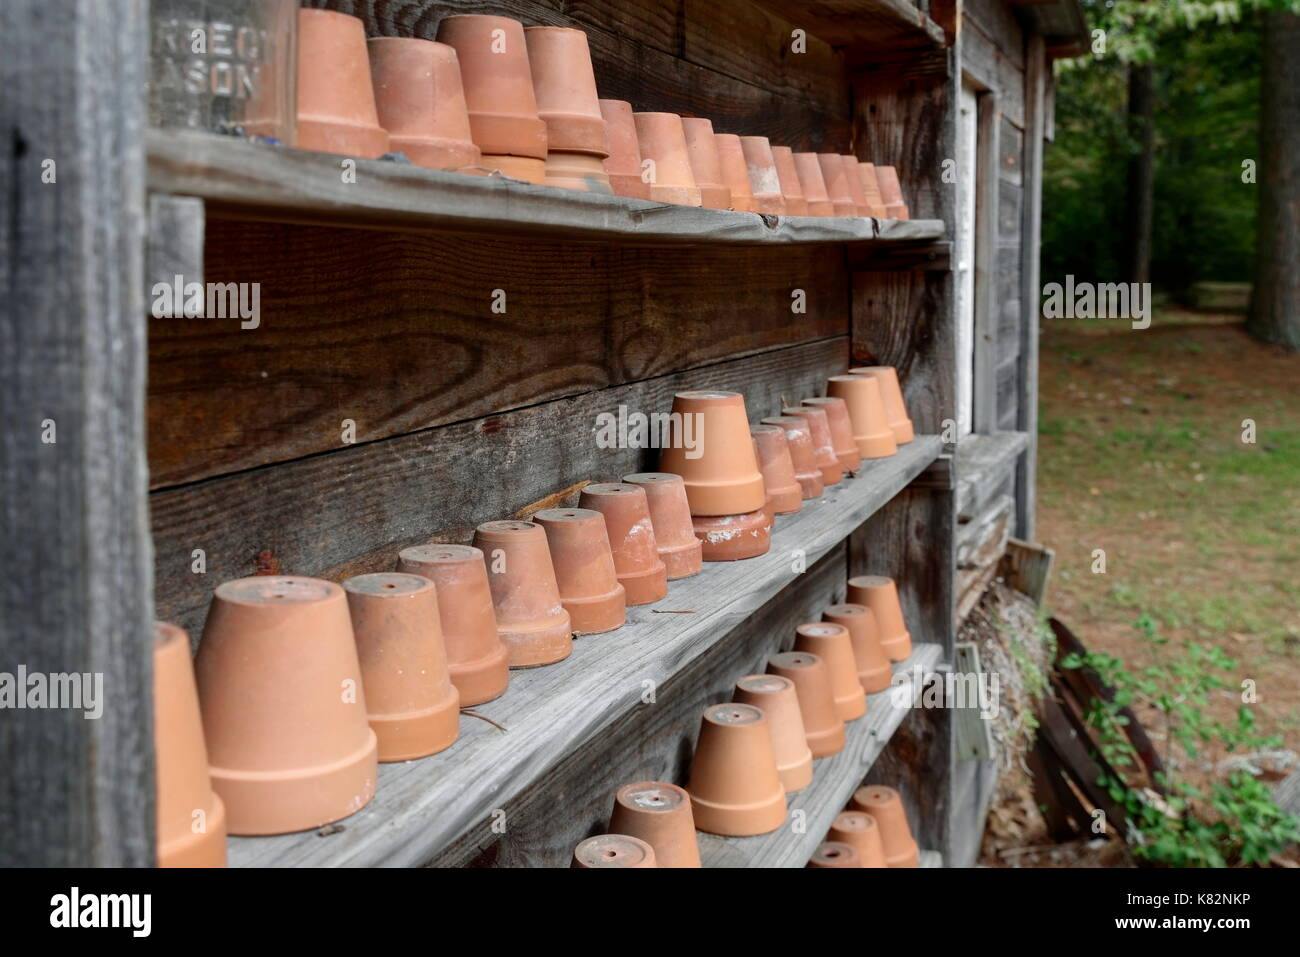 Clay Garden Pots On Shelves At The Furnacetown Living